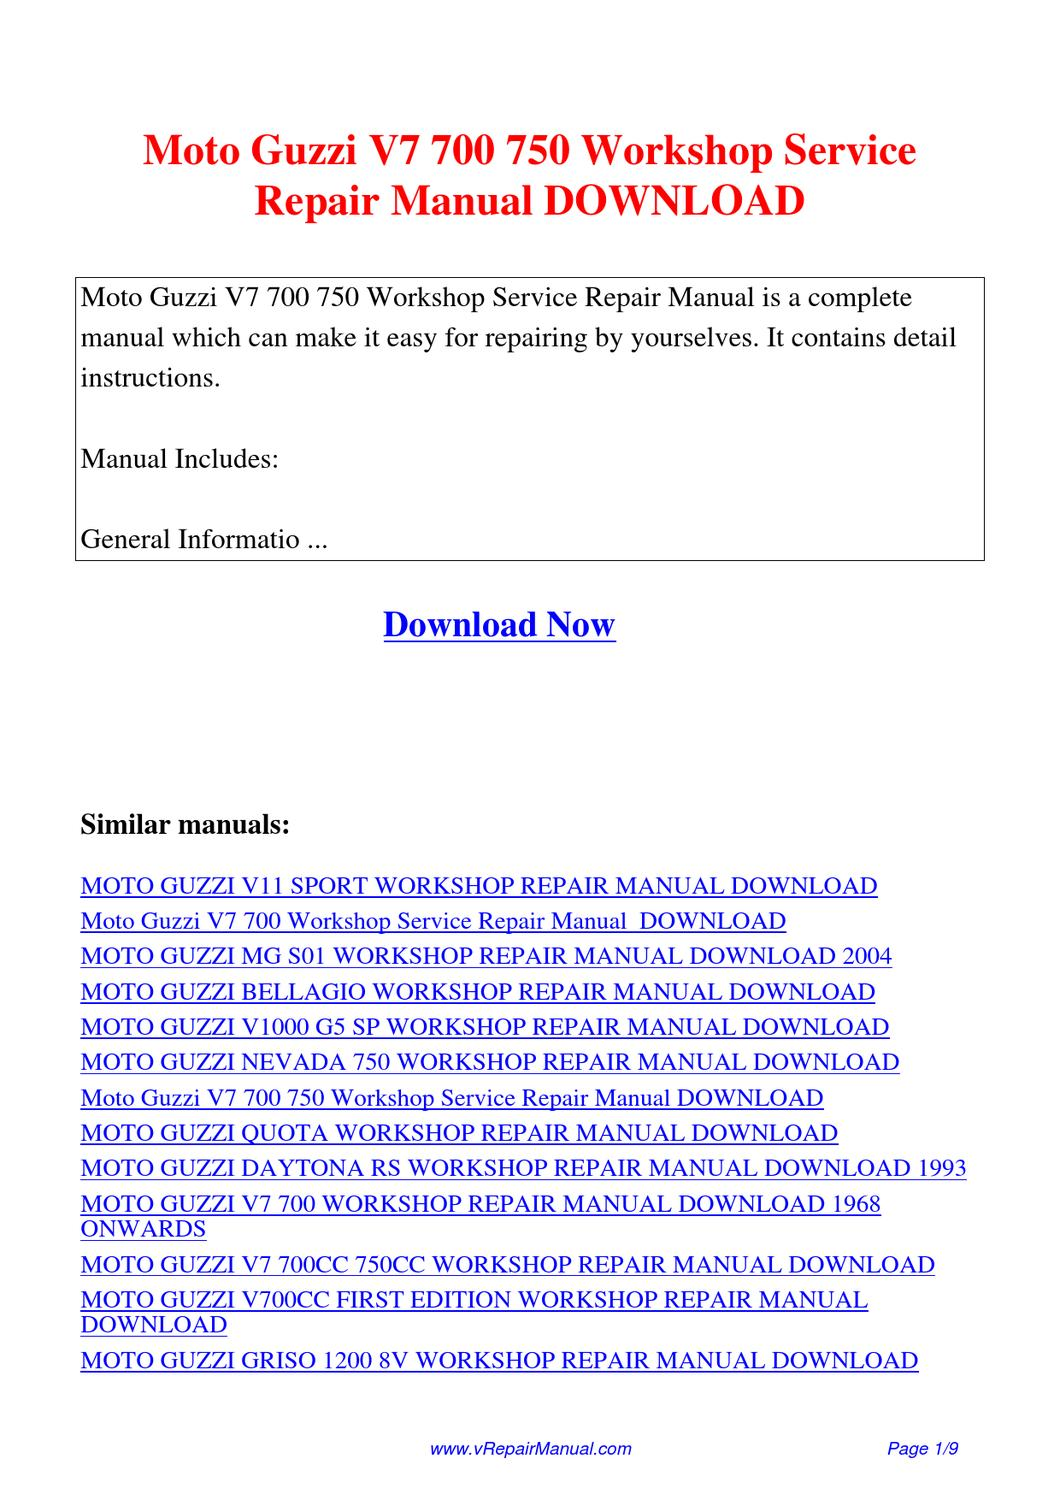 Moto Guzzi V7 700 750 Workshop Service Repair Manual By